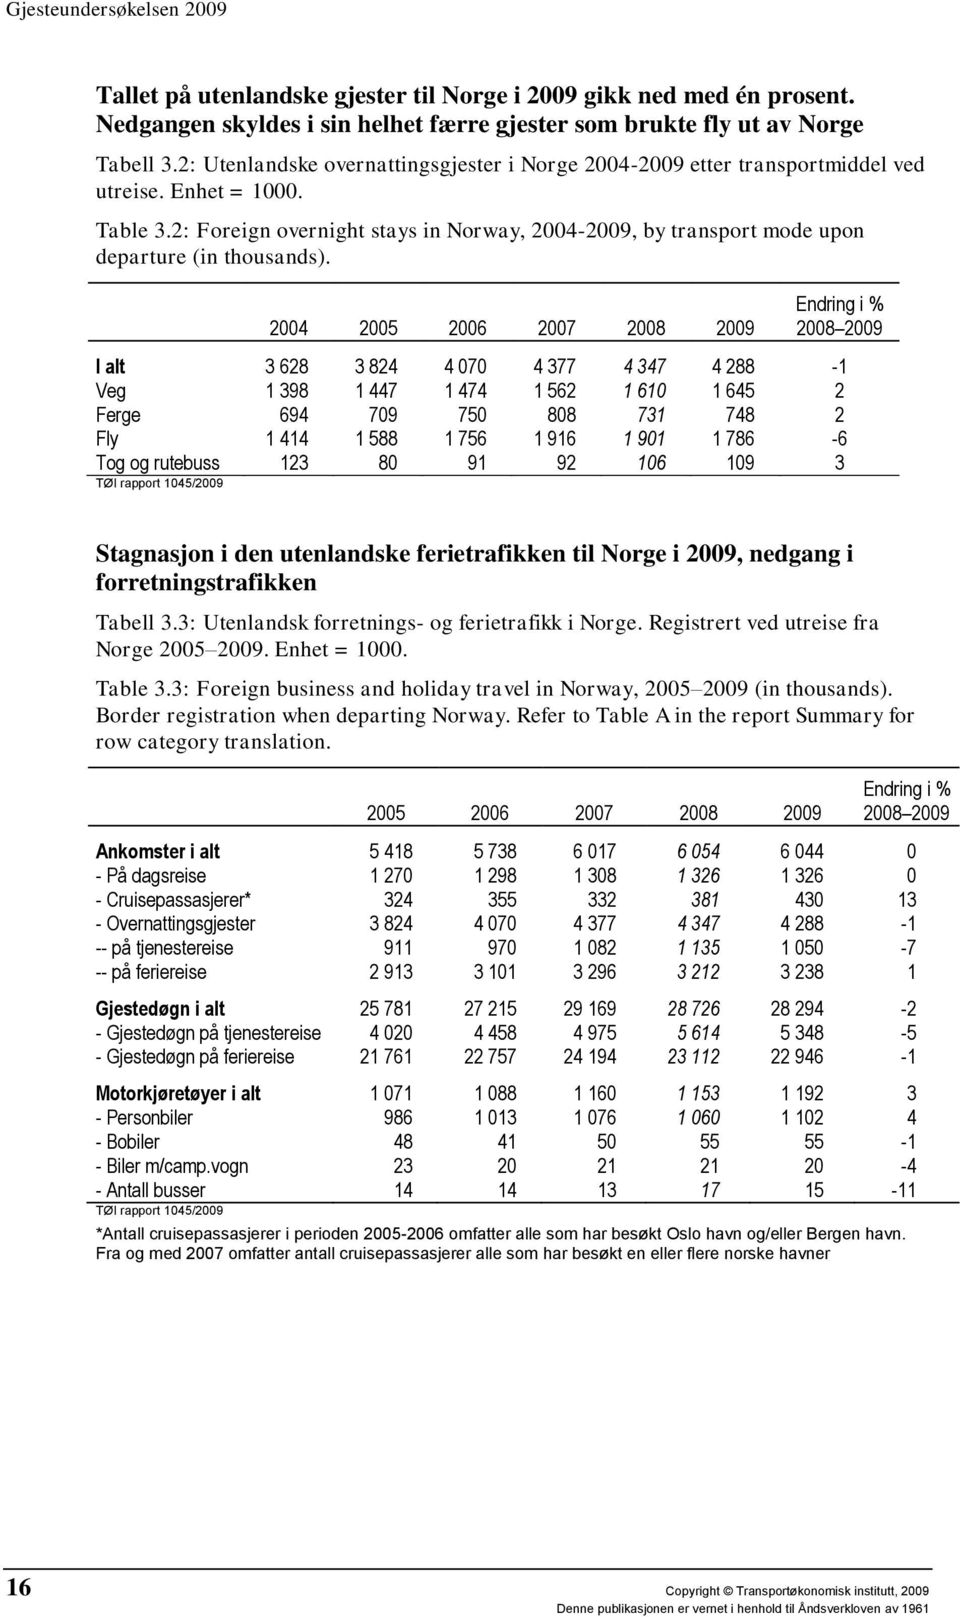 2: Foreign overnight stays in Norway, 2004-2009, by transport mode upon departure (in thousands).